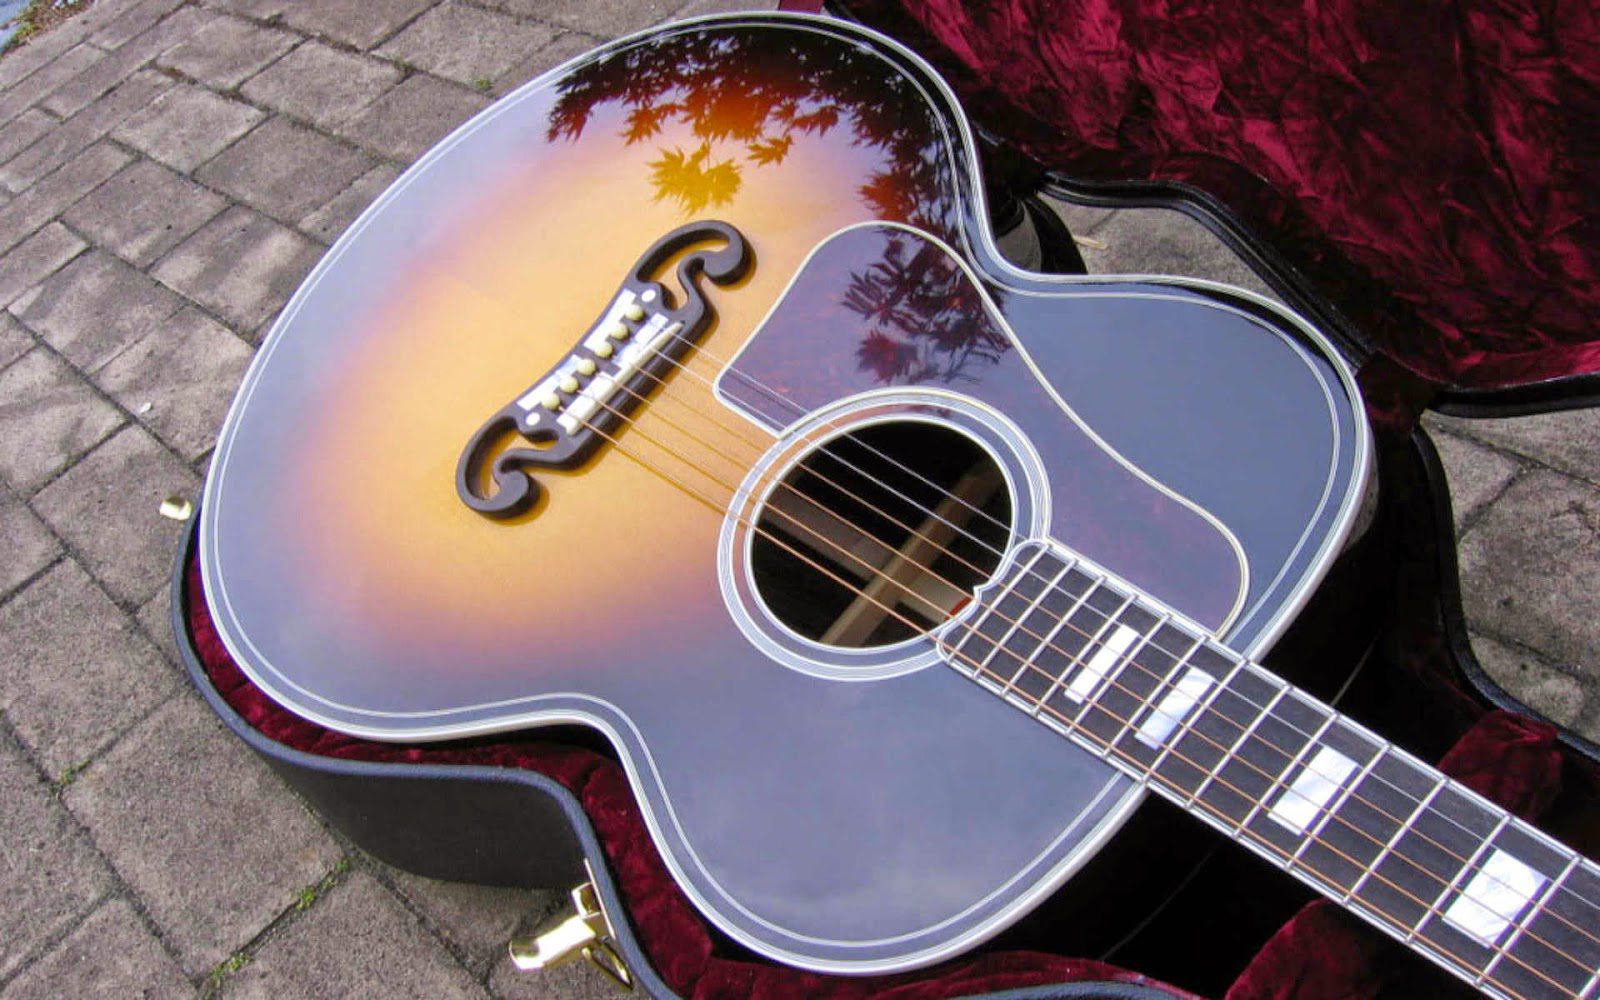 Guitar Pictures Hd Wallpaper 66467 1600x1000px